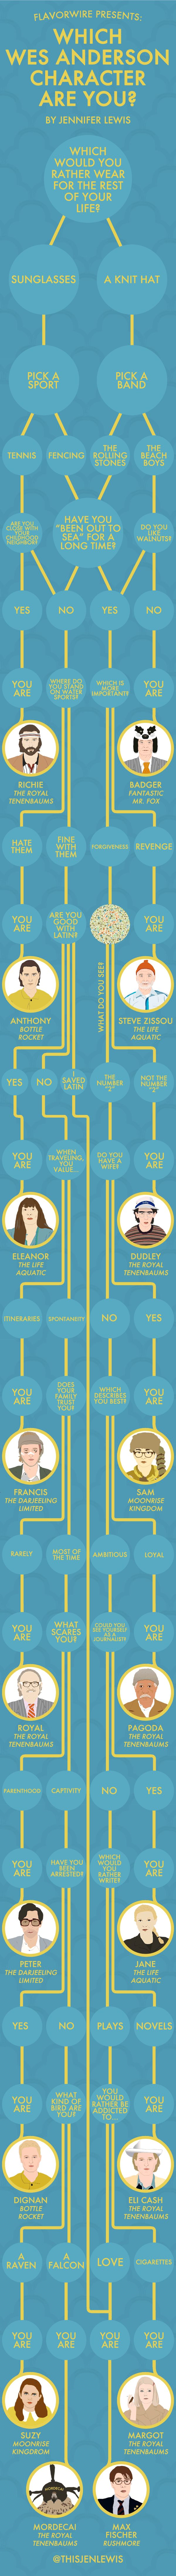 The Curious Brain » Which Wes Anderson Character Are You?